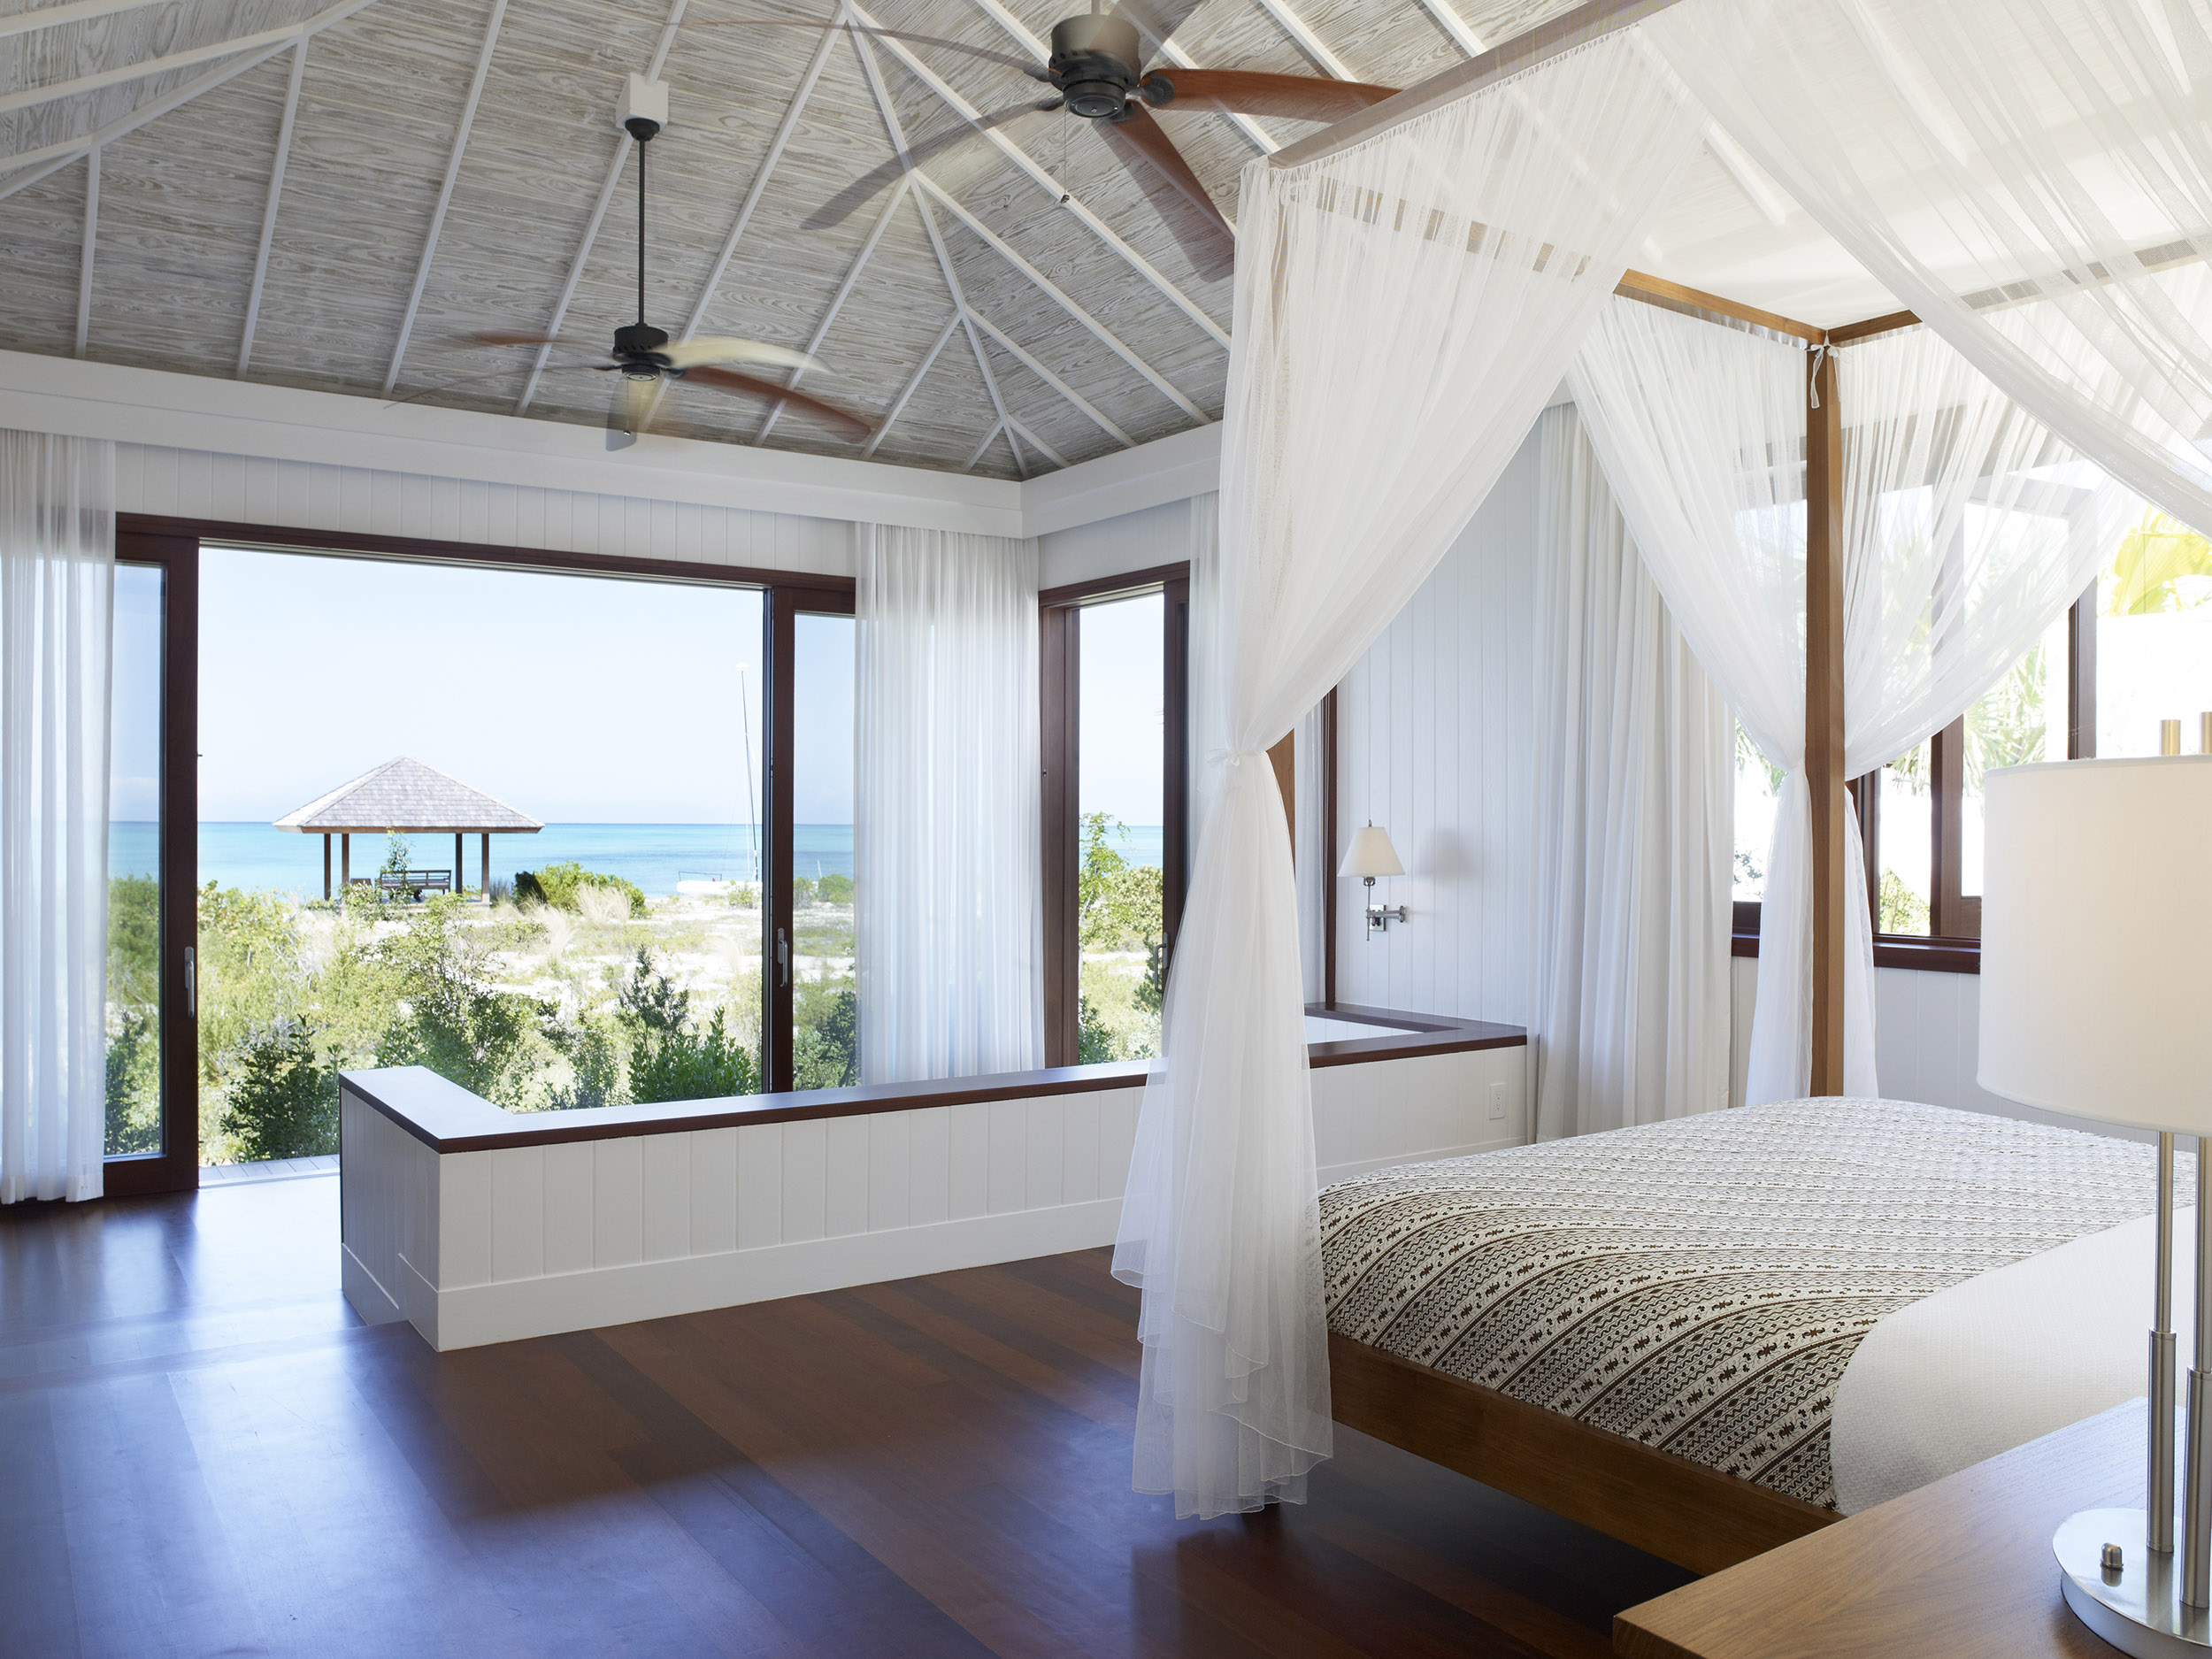 Tamarind - view of a bedroom, looking out to the beach